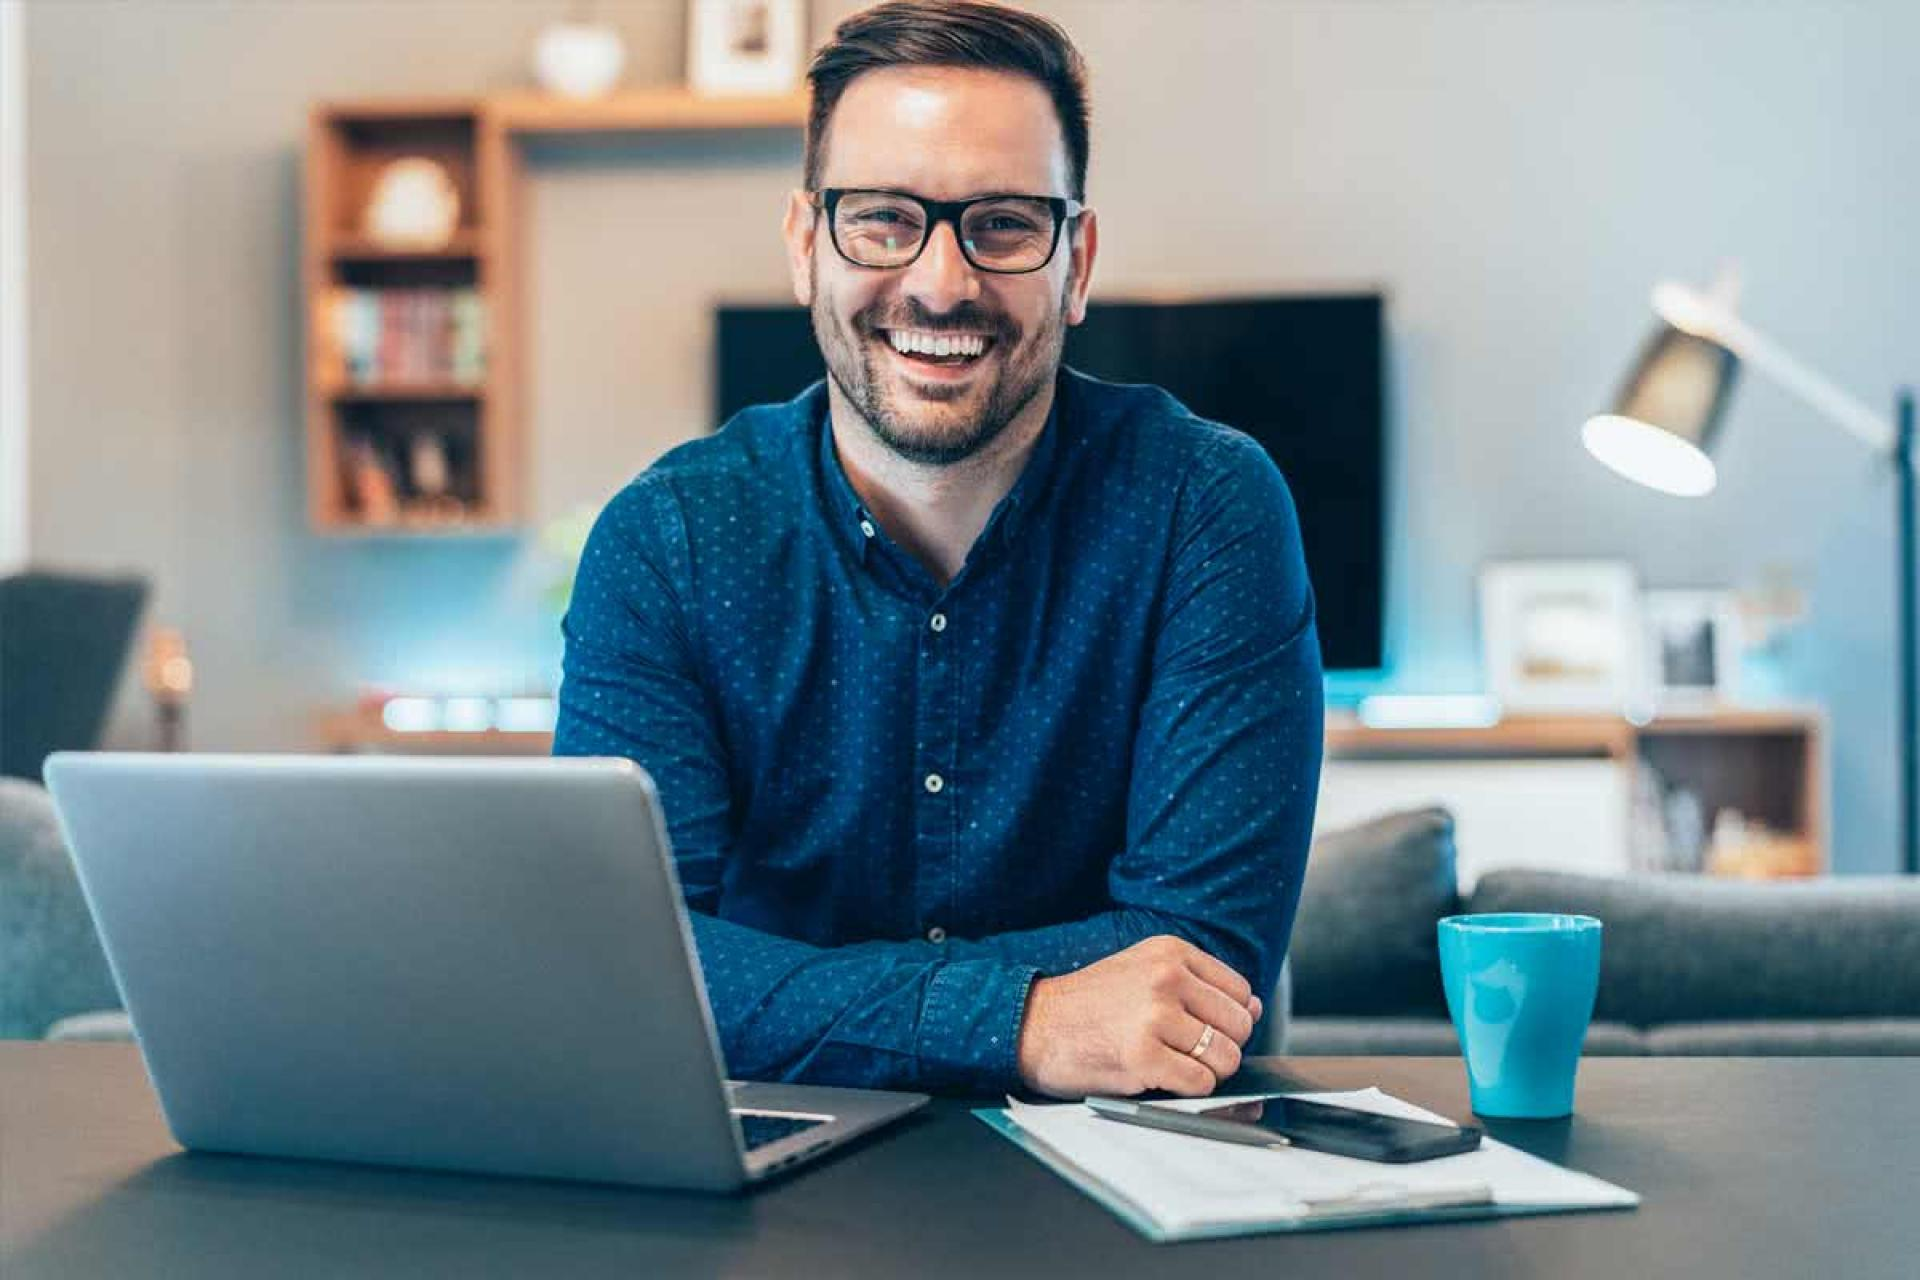 Man with glasses and a laptop smiling